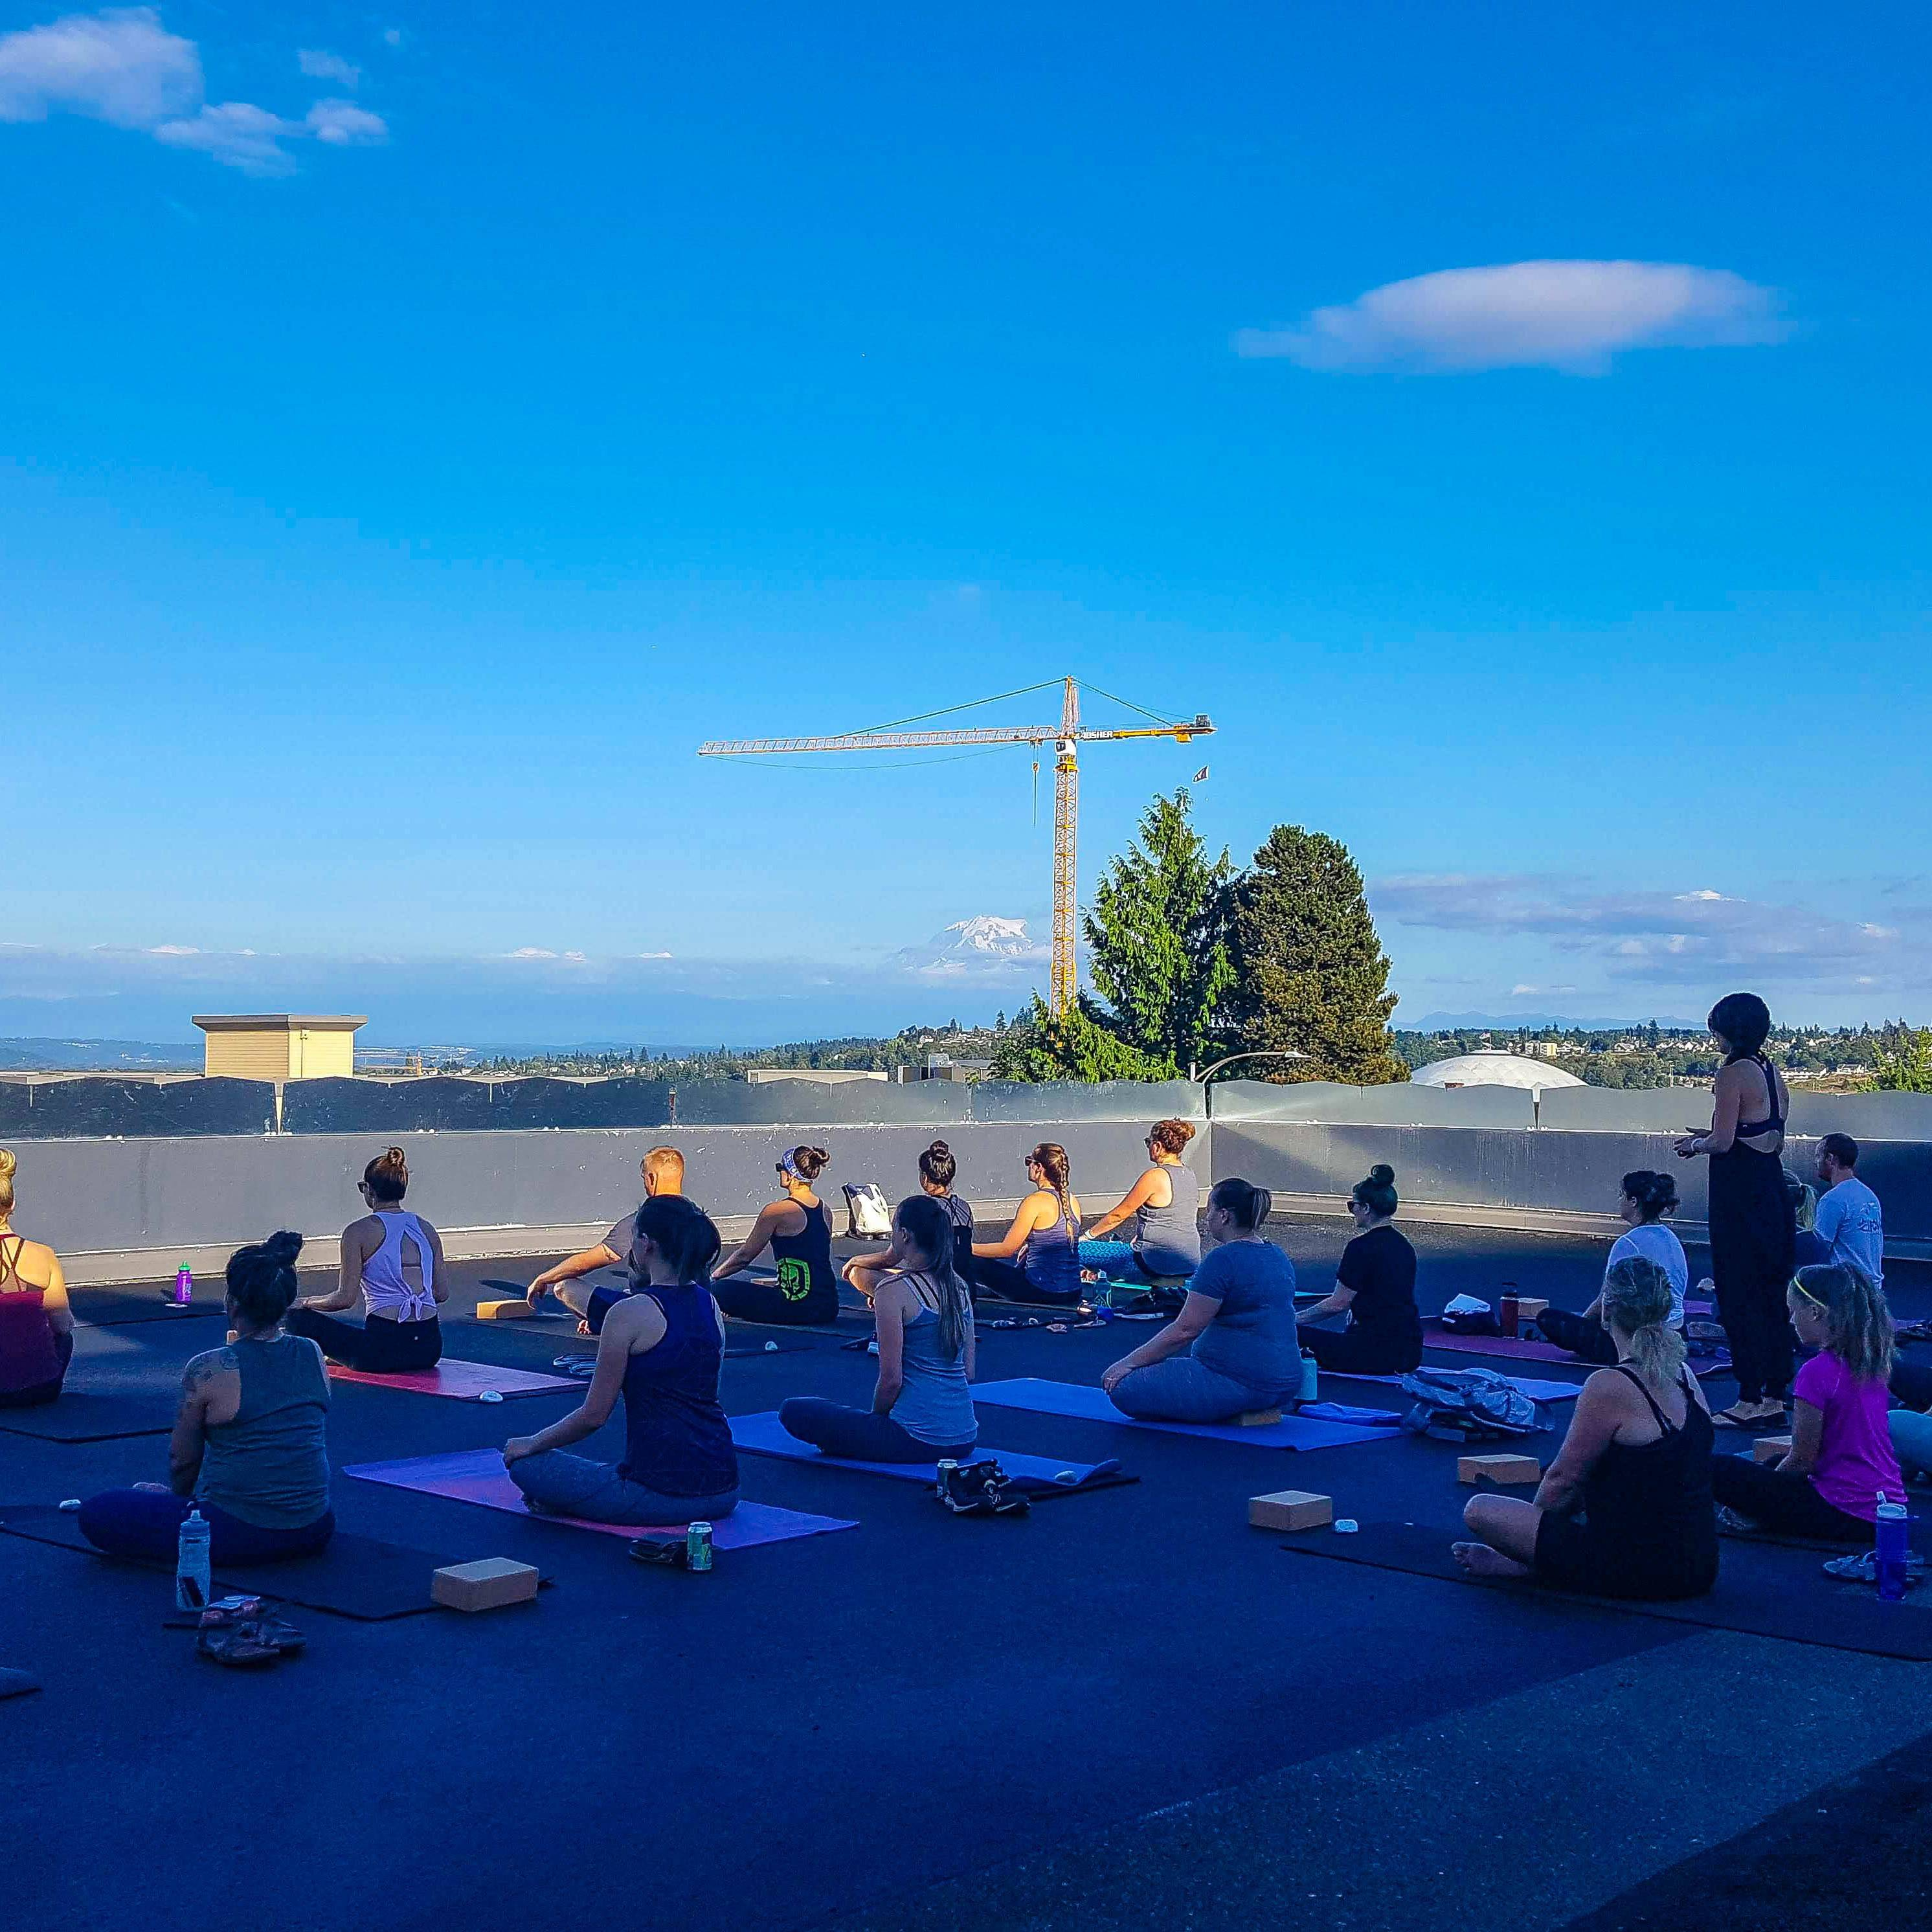 Yoga on a rooftop with blue skies and a view of Mt. Rainier.